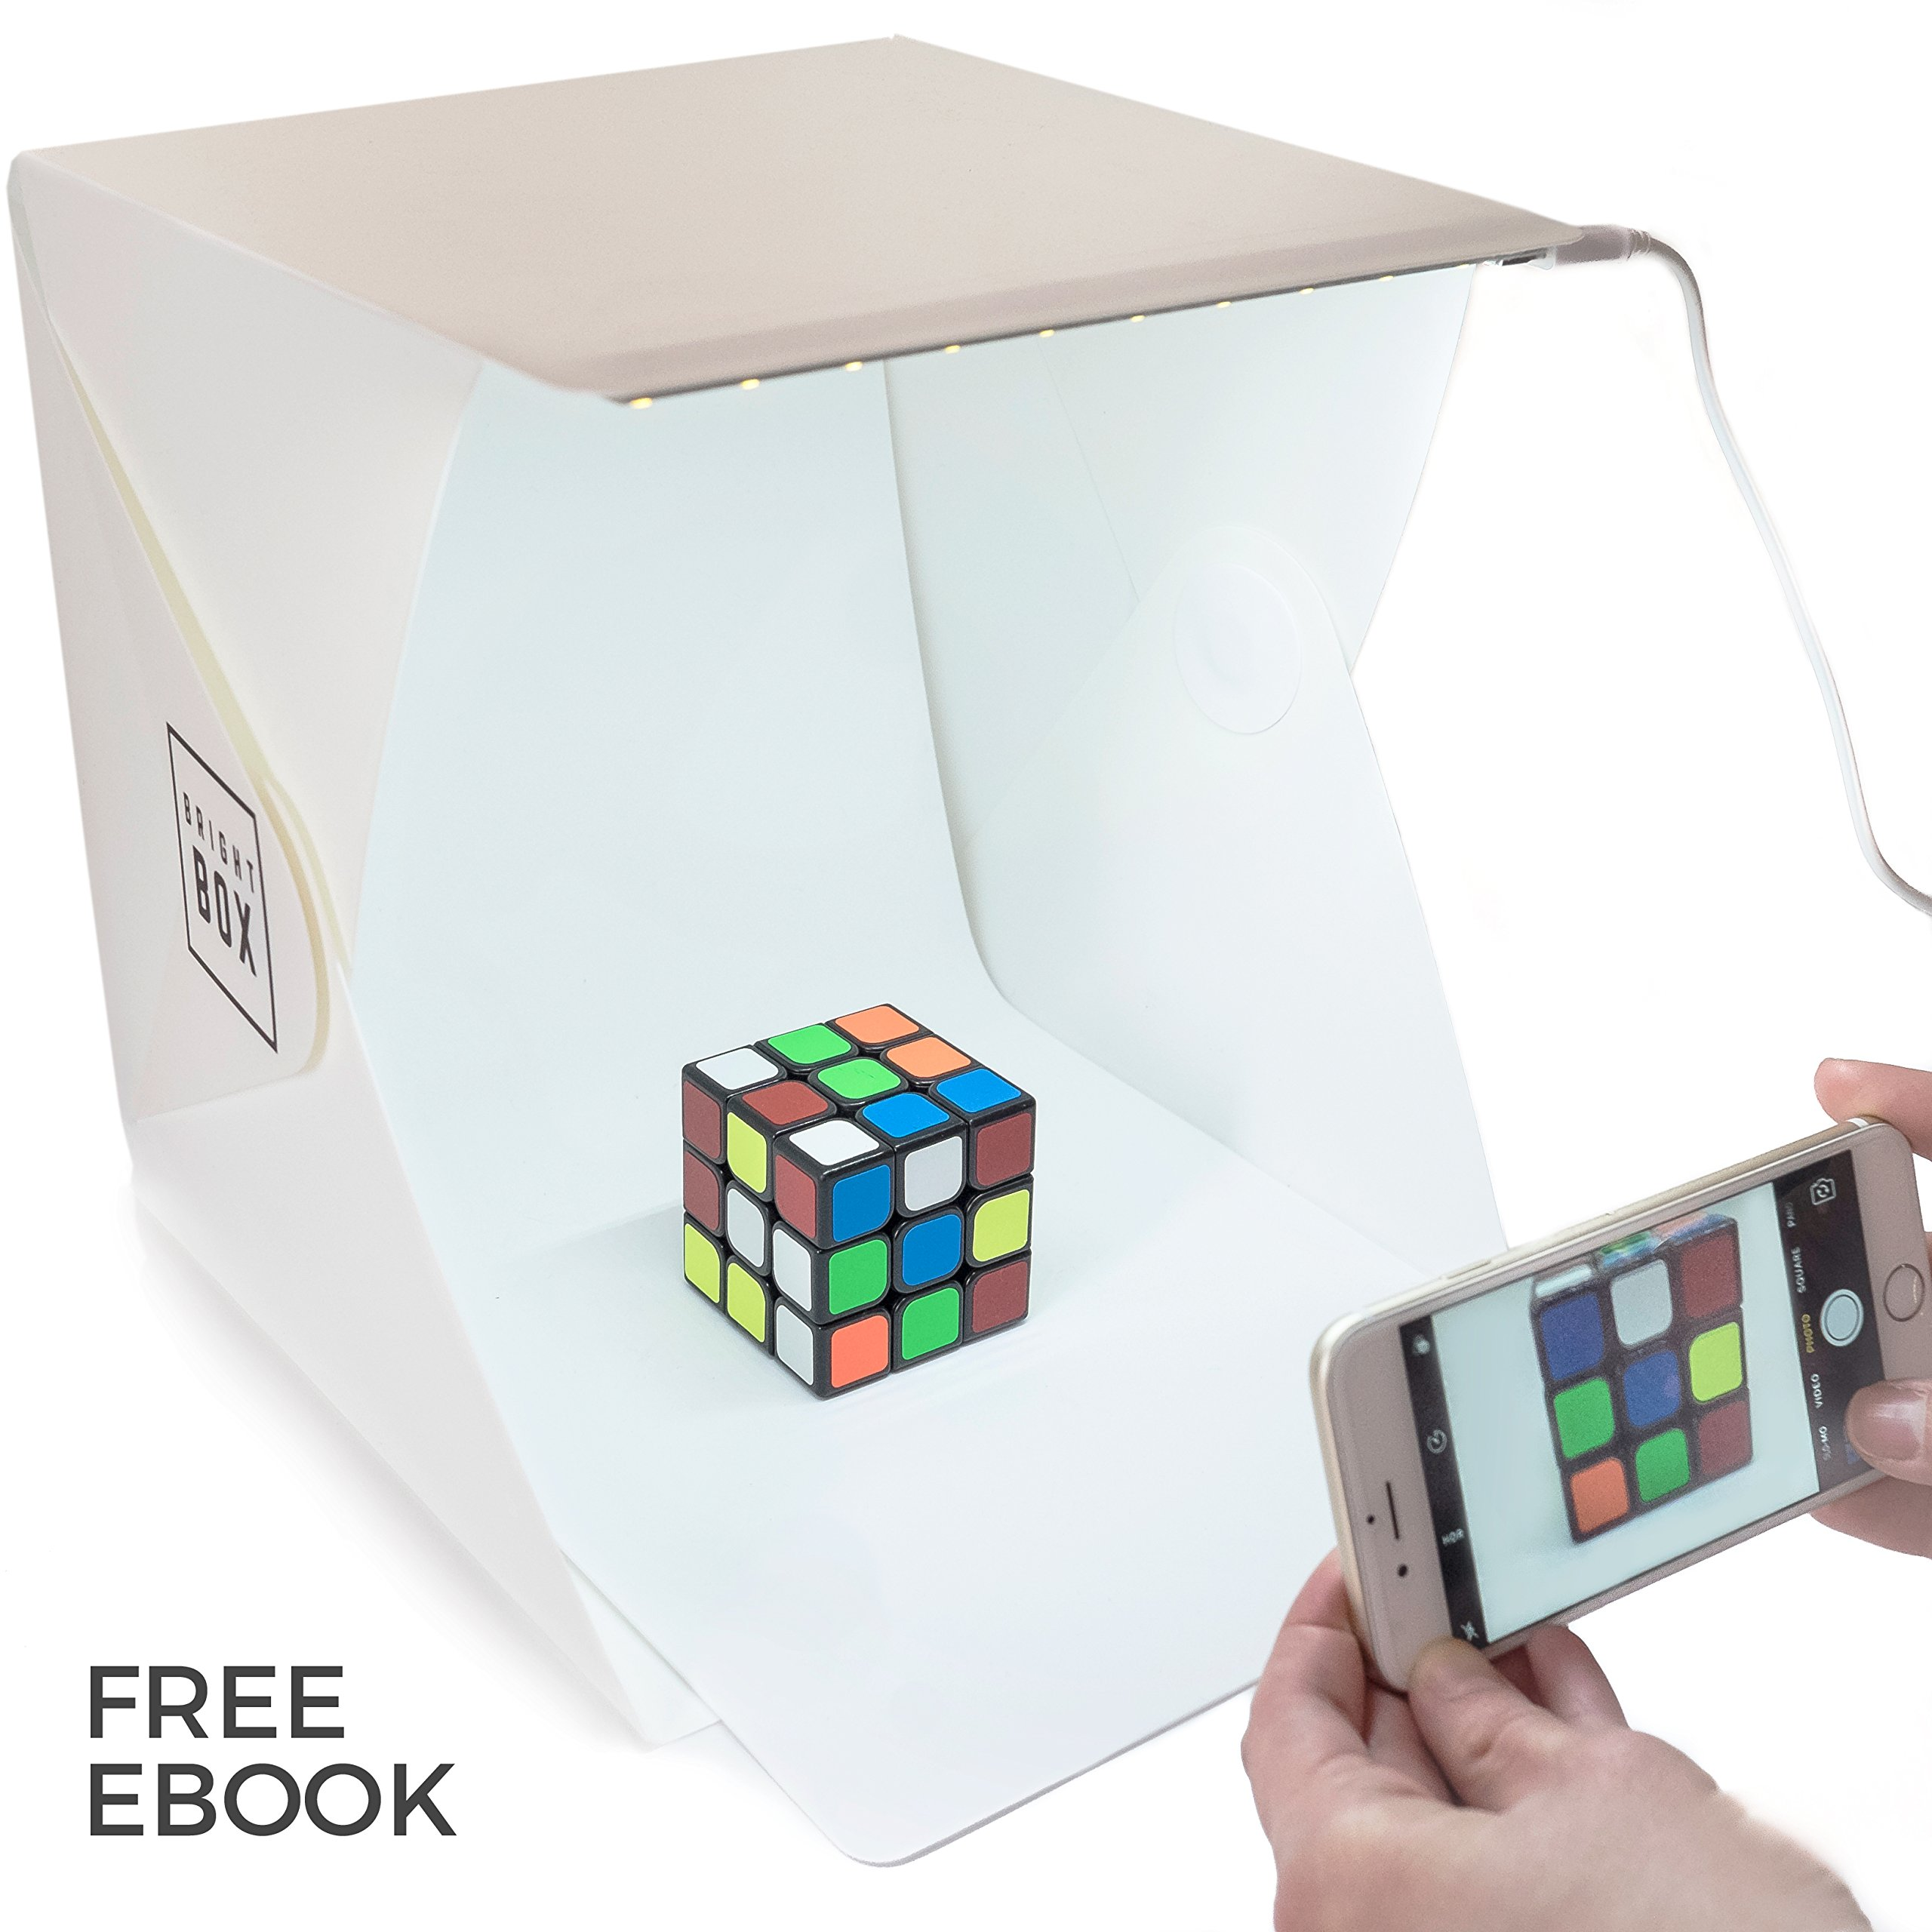 BrightBox Portable Mini Photo Studio With LED Light - The Best Small Folding Product Lighting Kit Light Box Tent (+ free ebook guide to product photography) by Gordon & Bond